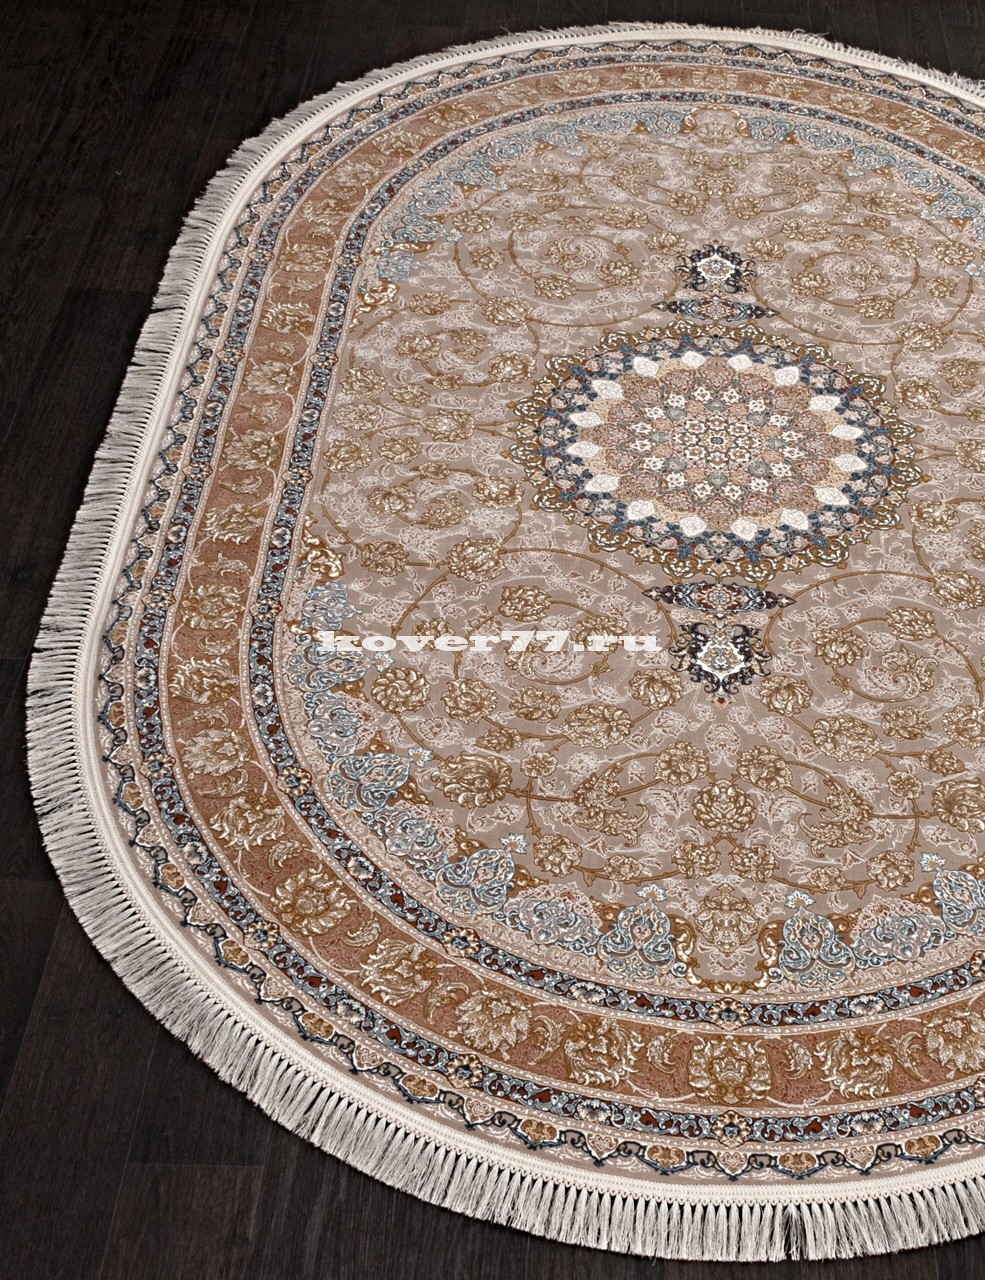 FARSI 1200 G129 - CREAM OVAL